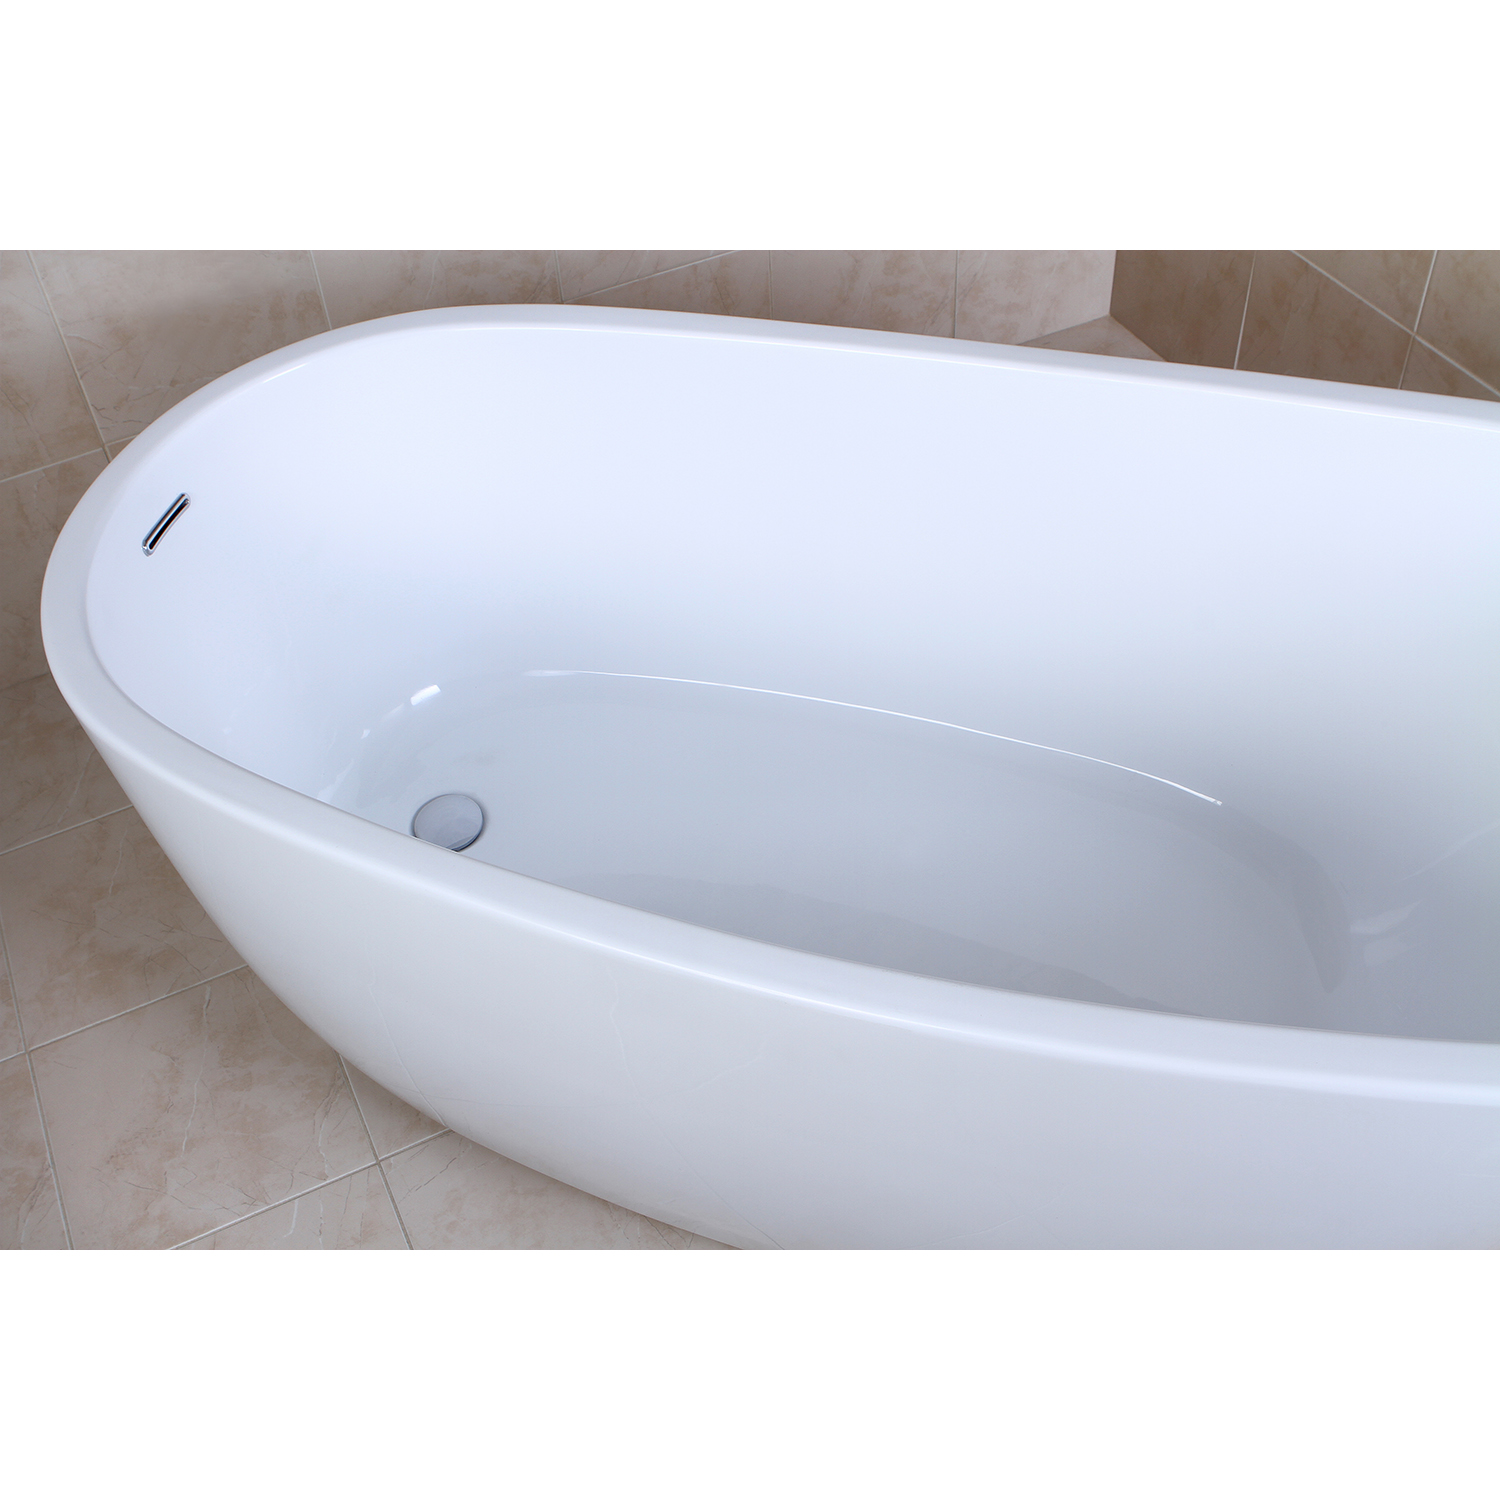 59″ Aqua Eden Contemporary Freestanding Acrylic Bathtub | Platinum Bath